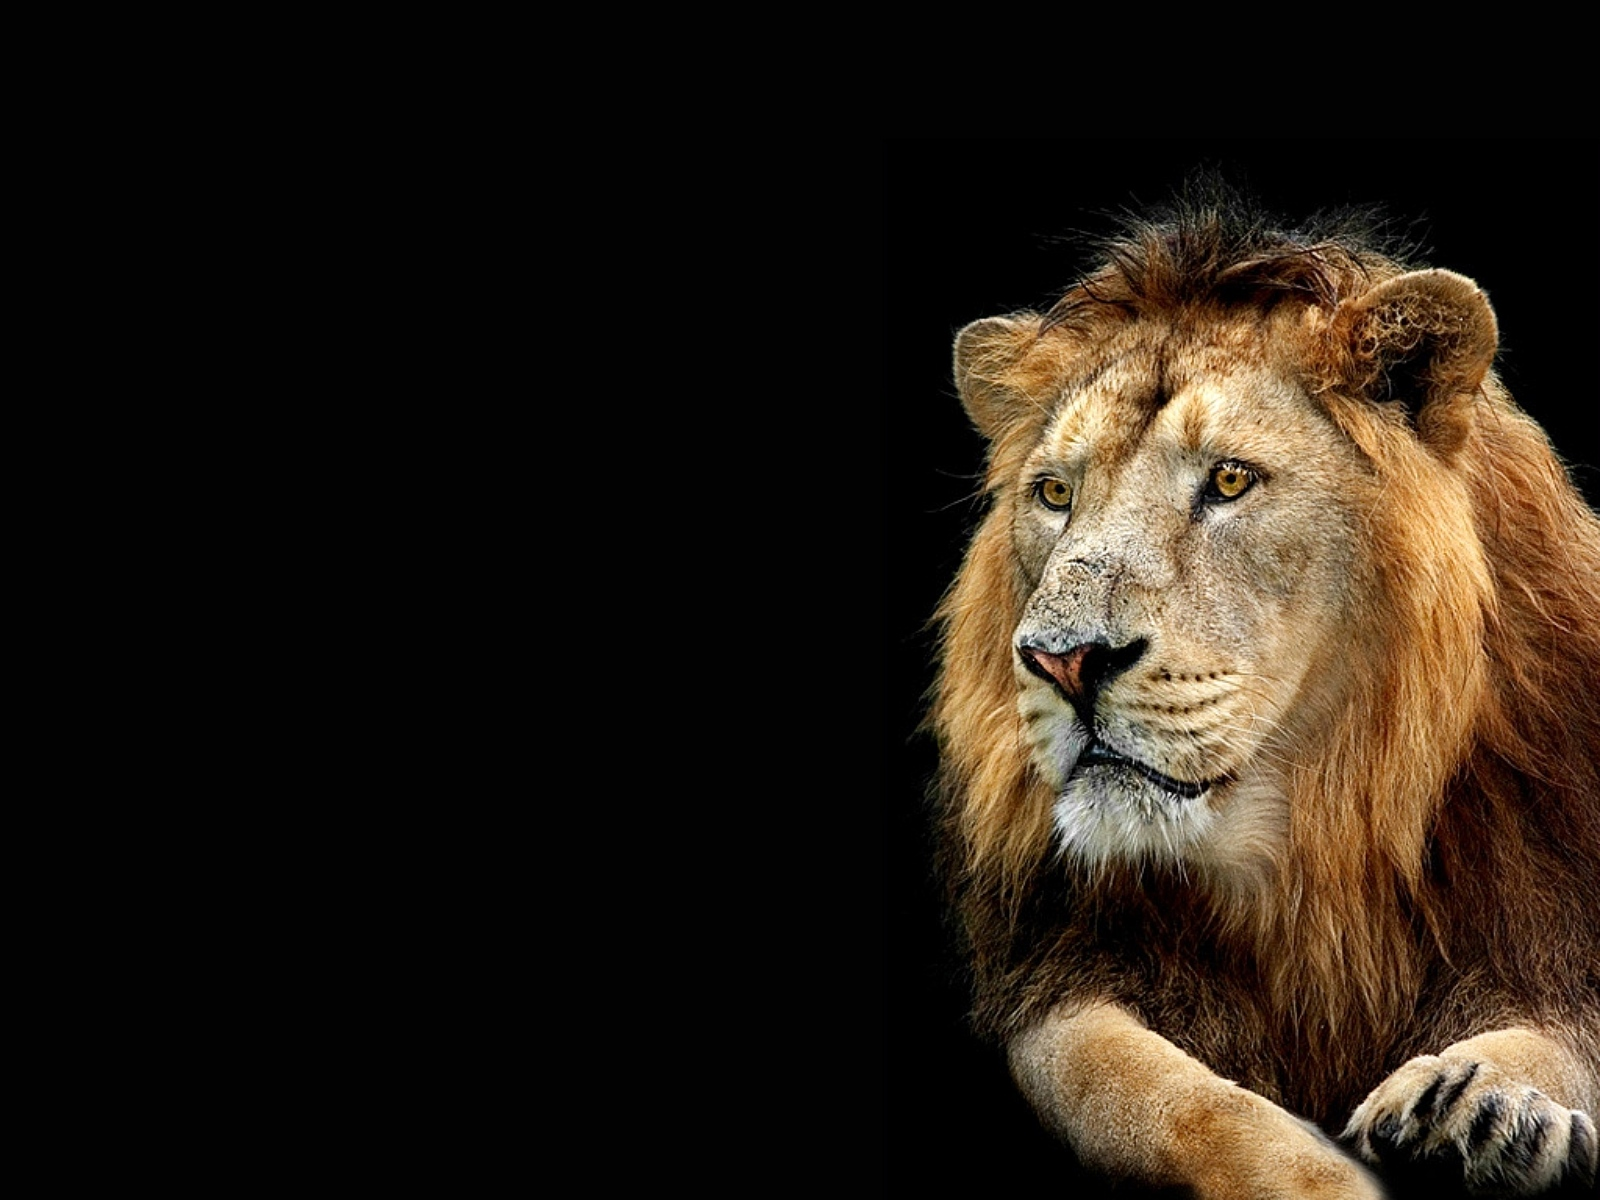 Animals Lion Wallpapers Hd Desktop And Mobile Backgrounds: Nature Wallpaper